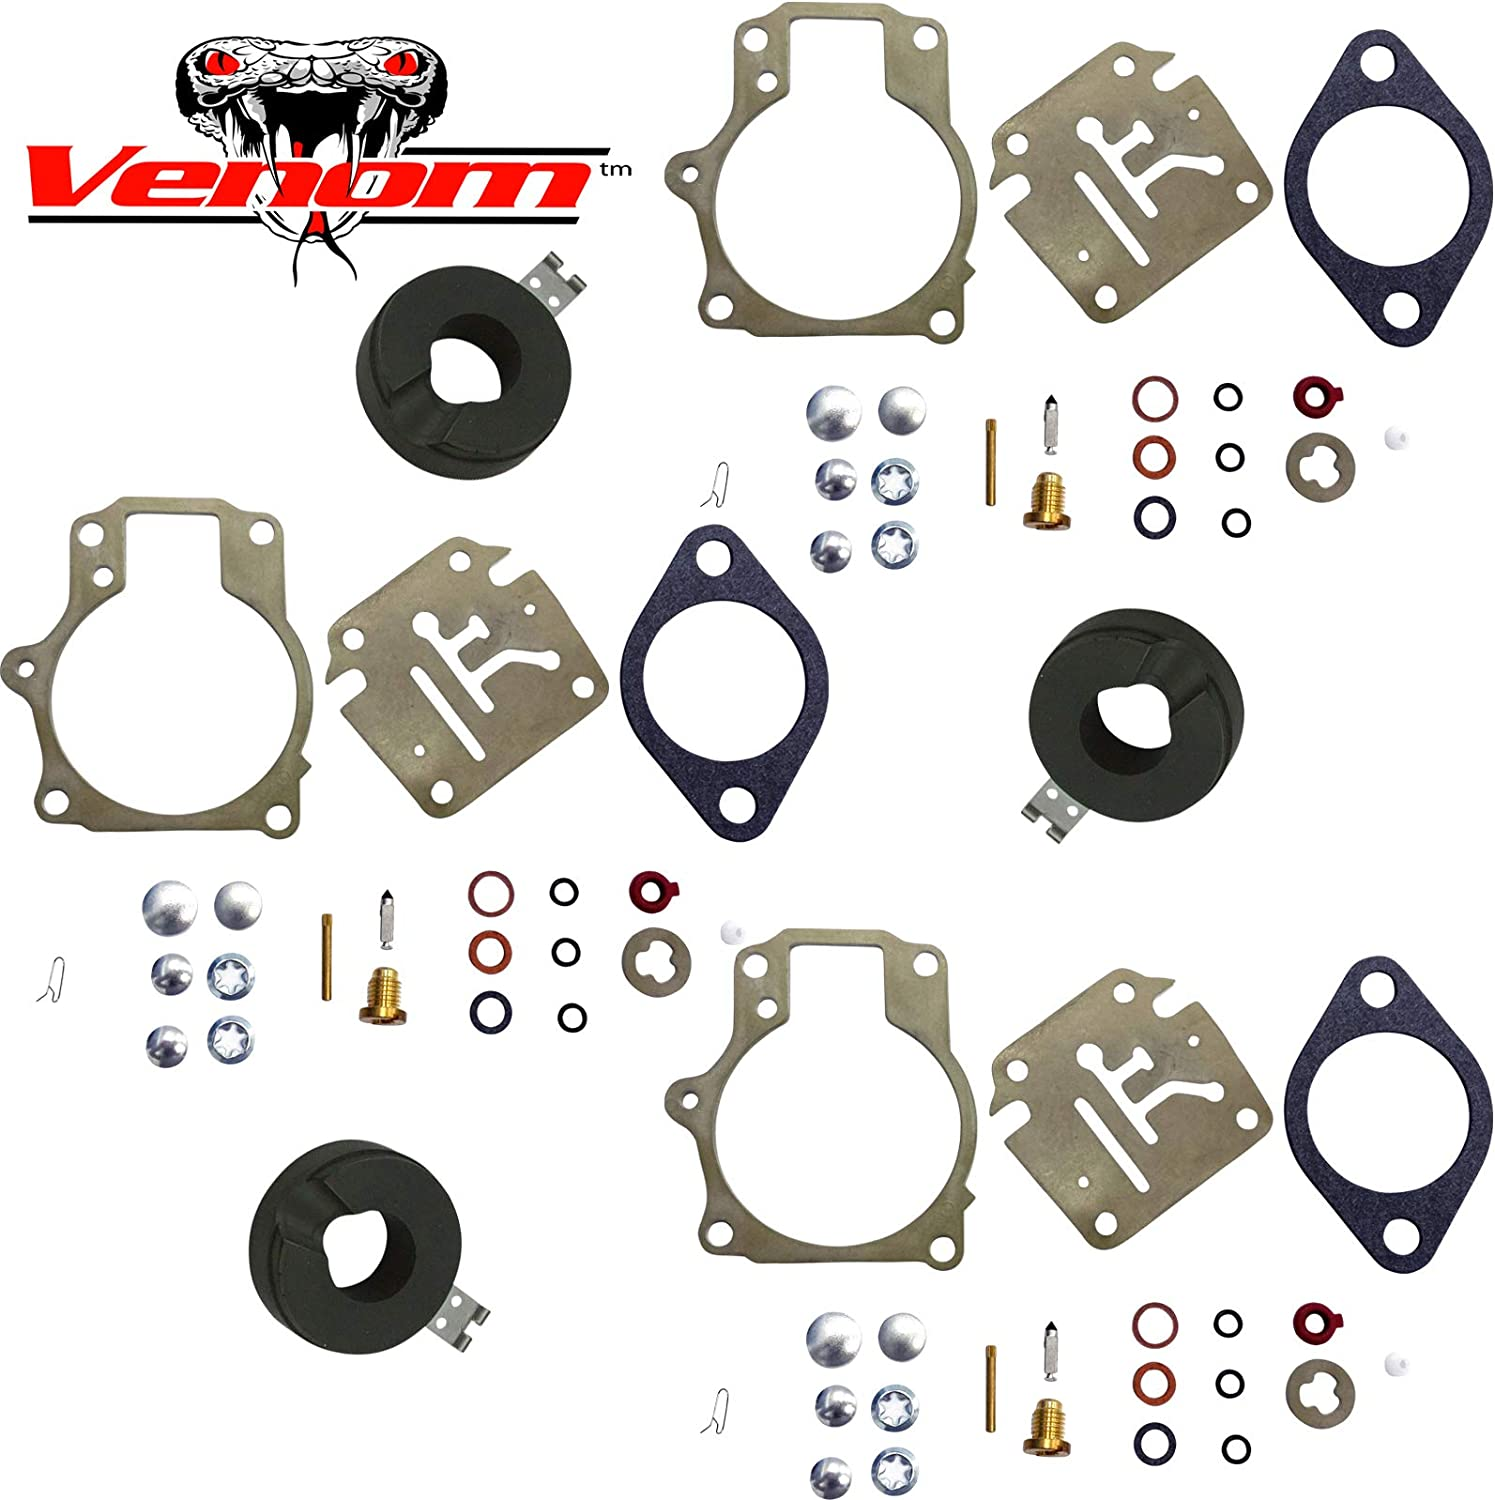 2Pack Carburetor Rebuild Kit with Float for Johnson Evinrude 396701 392061 398729 18 20 25 28 30 35 40 45 48 50 55 60 65 70 75 HP Outboard Motors Replaces Sierra 18-7222 18-7042 Mallory 9-37107